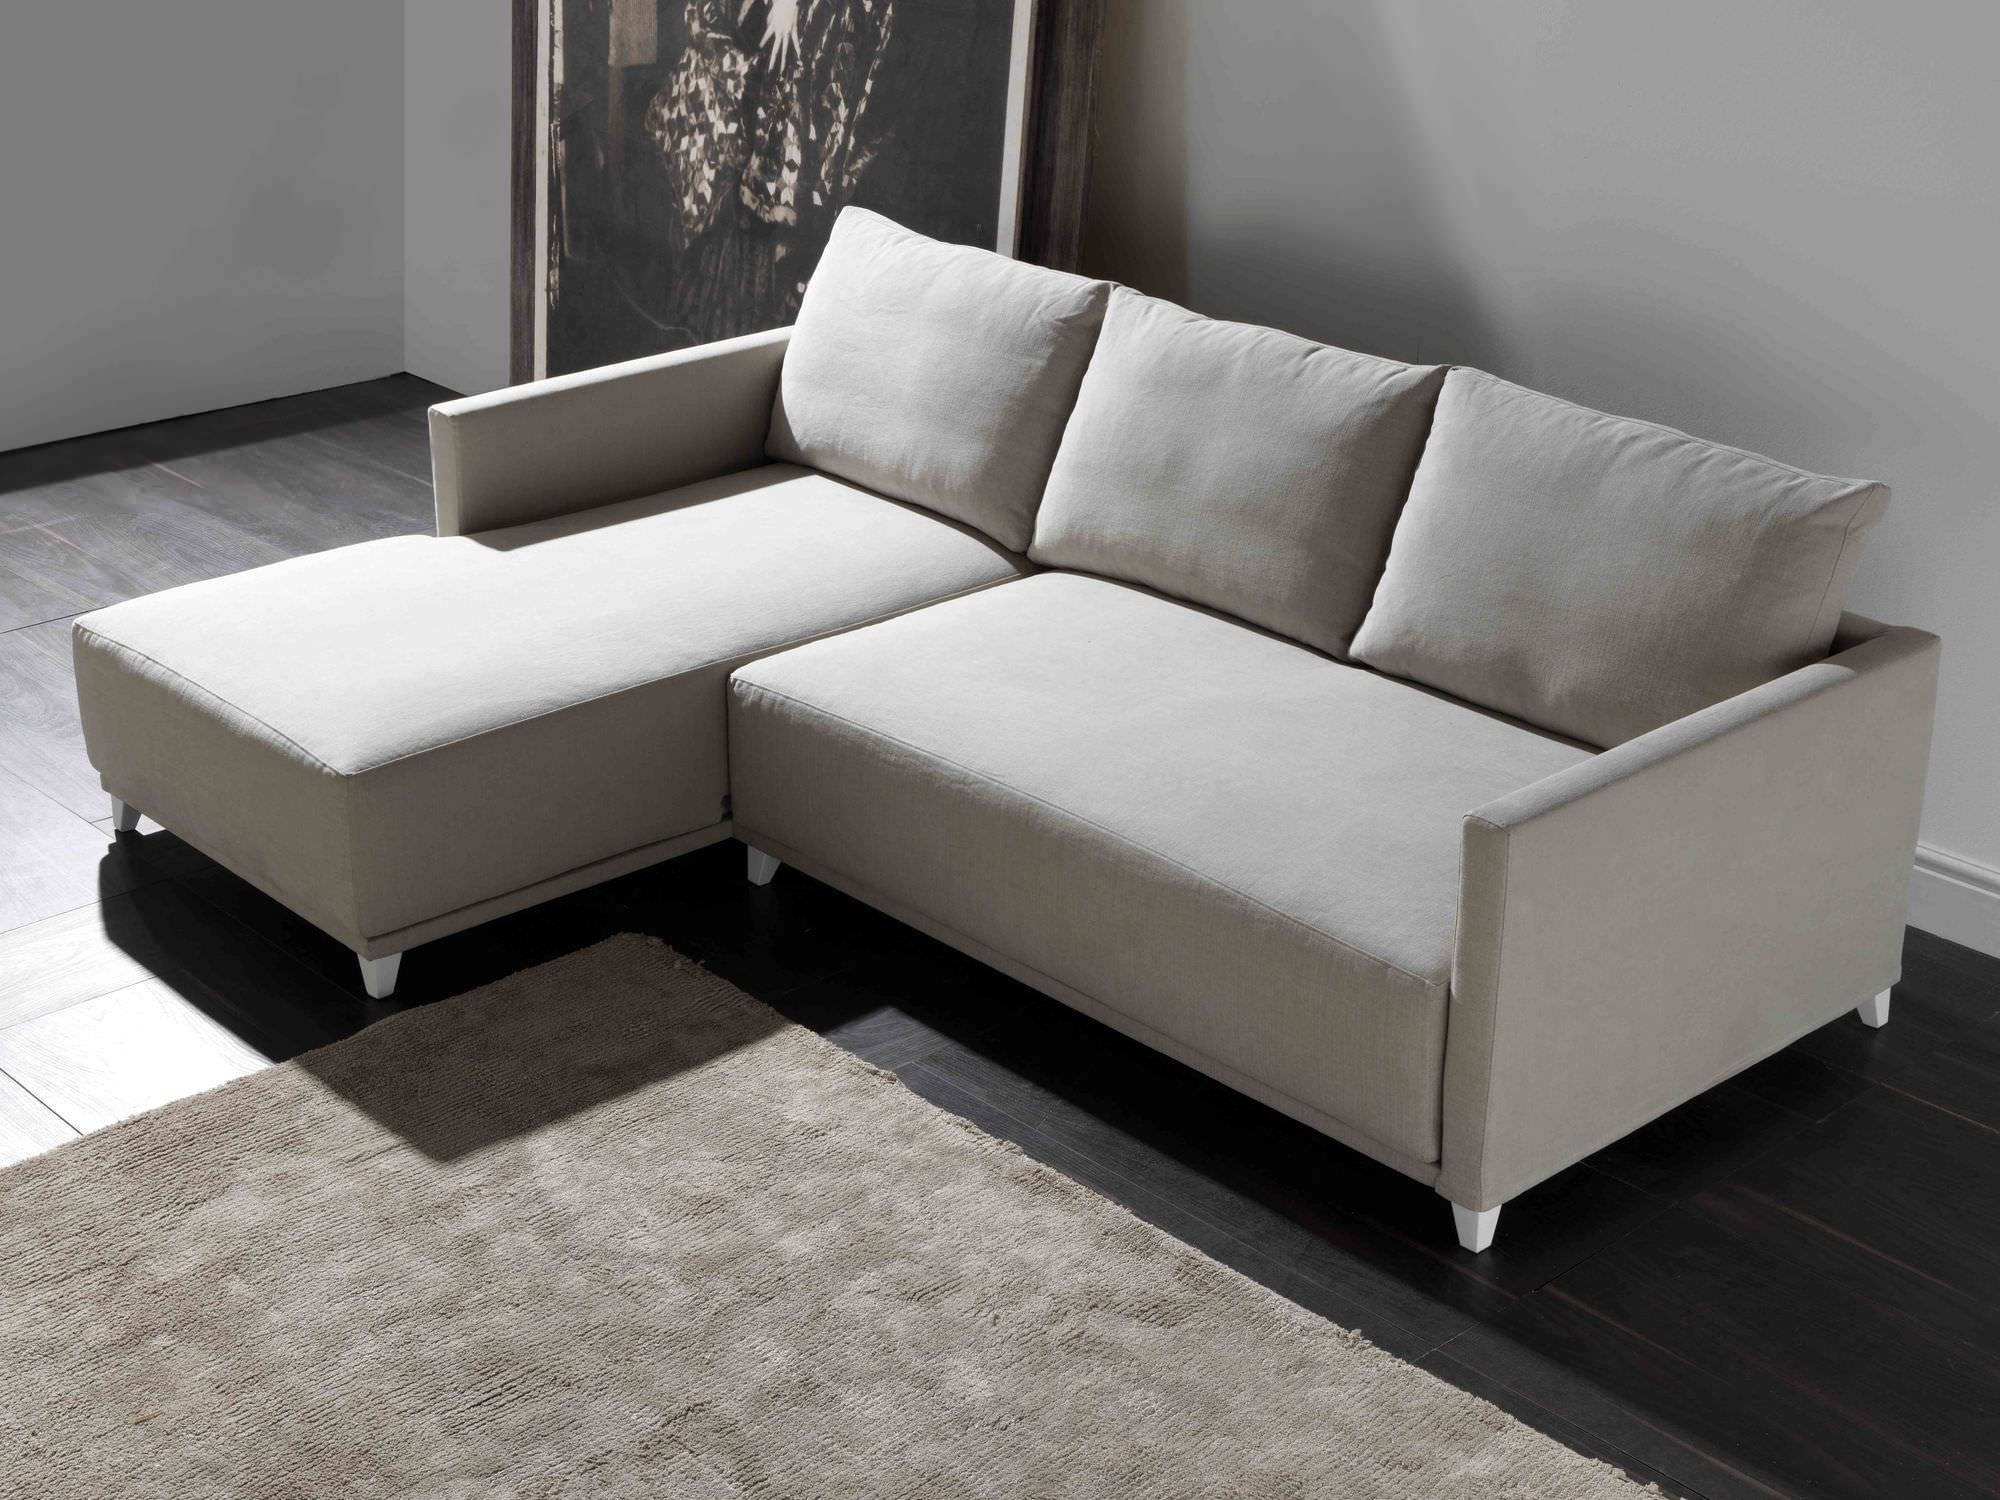 Corner sofa / contemporary / leather / 2-person - NONAME ...